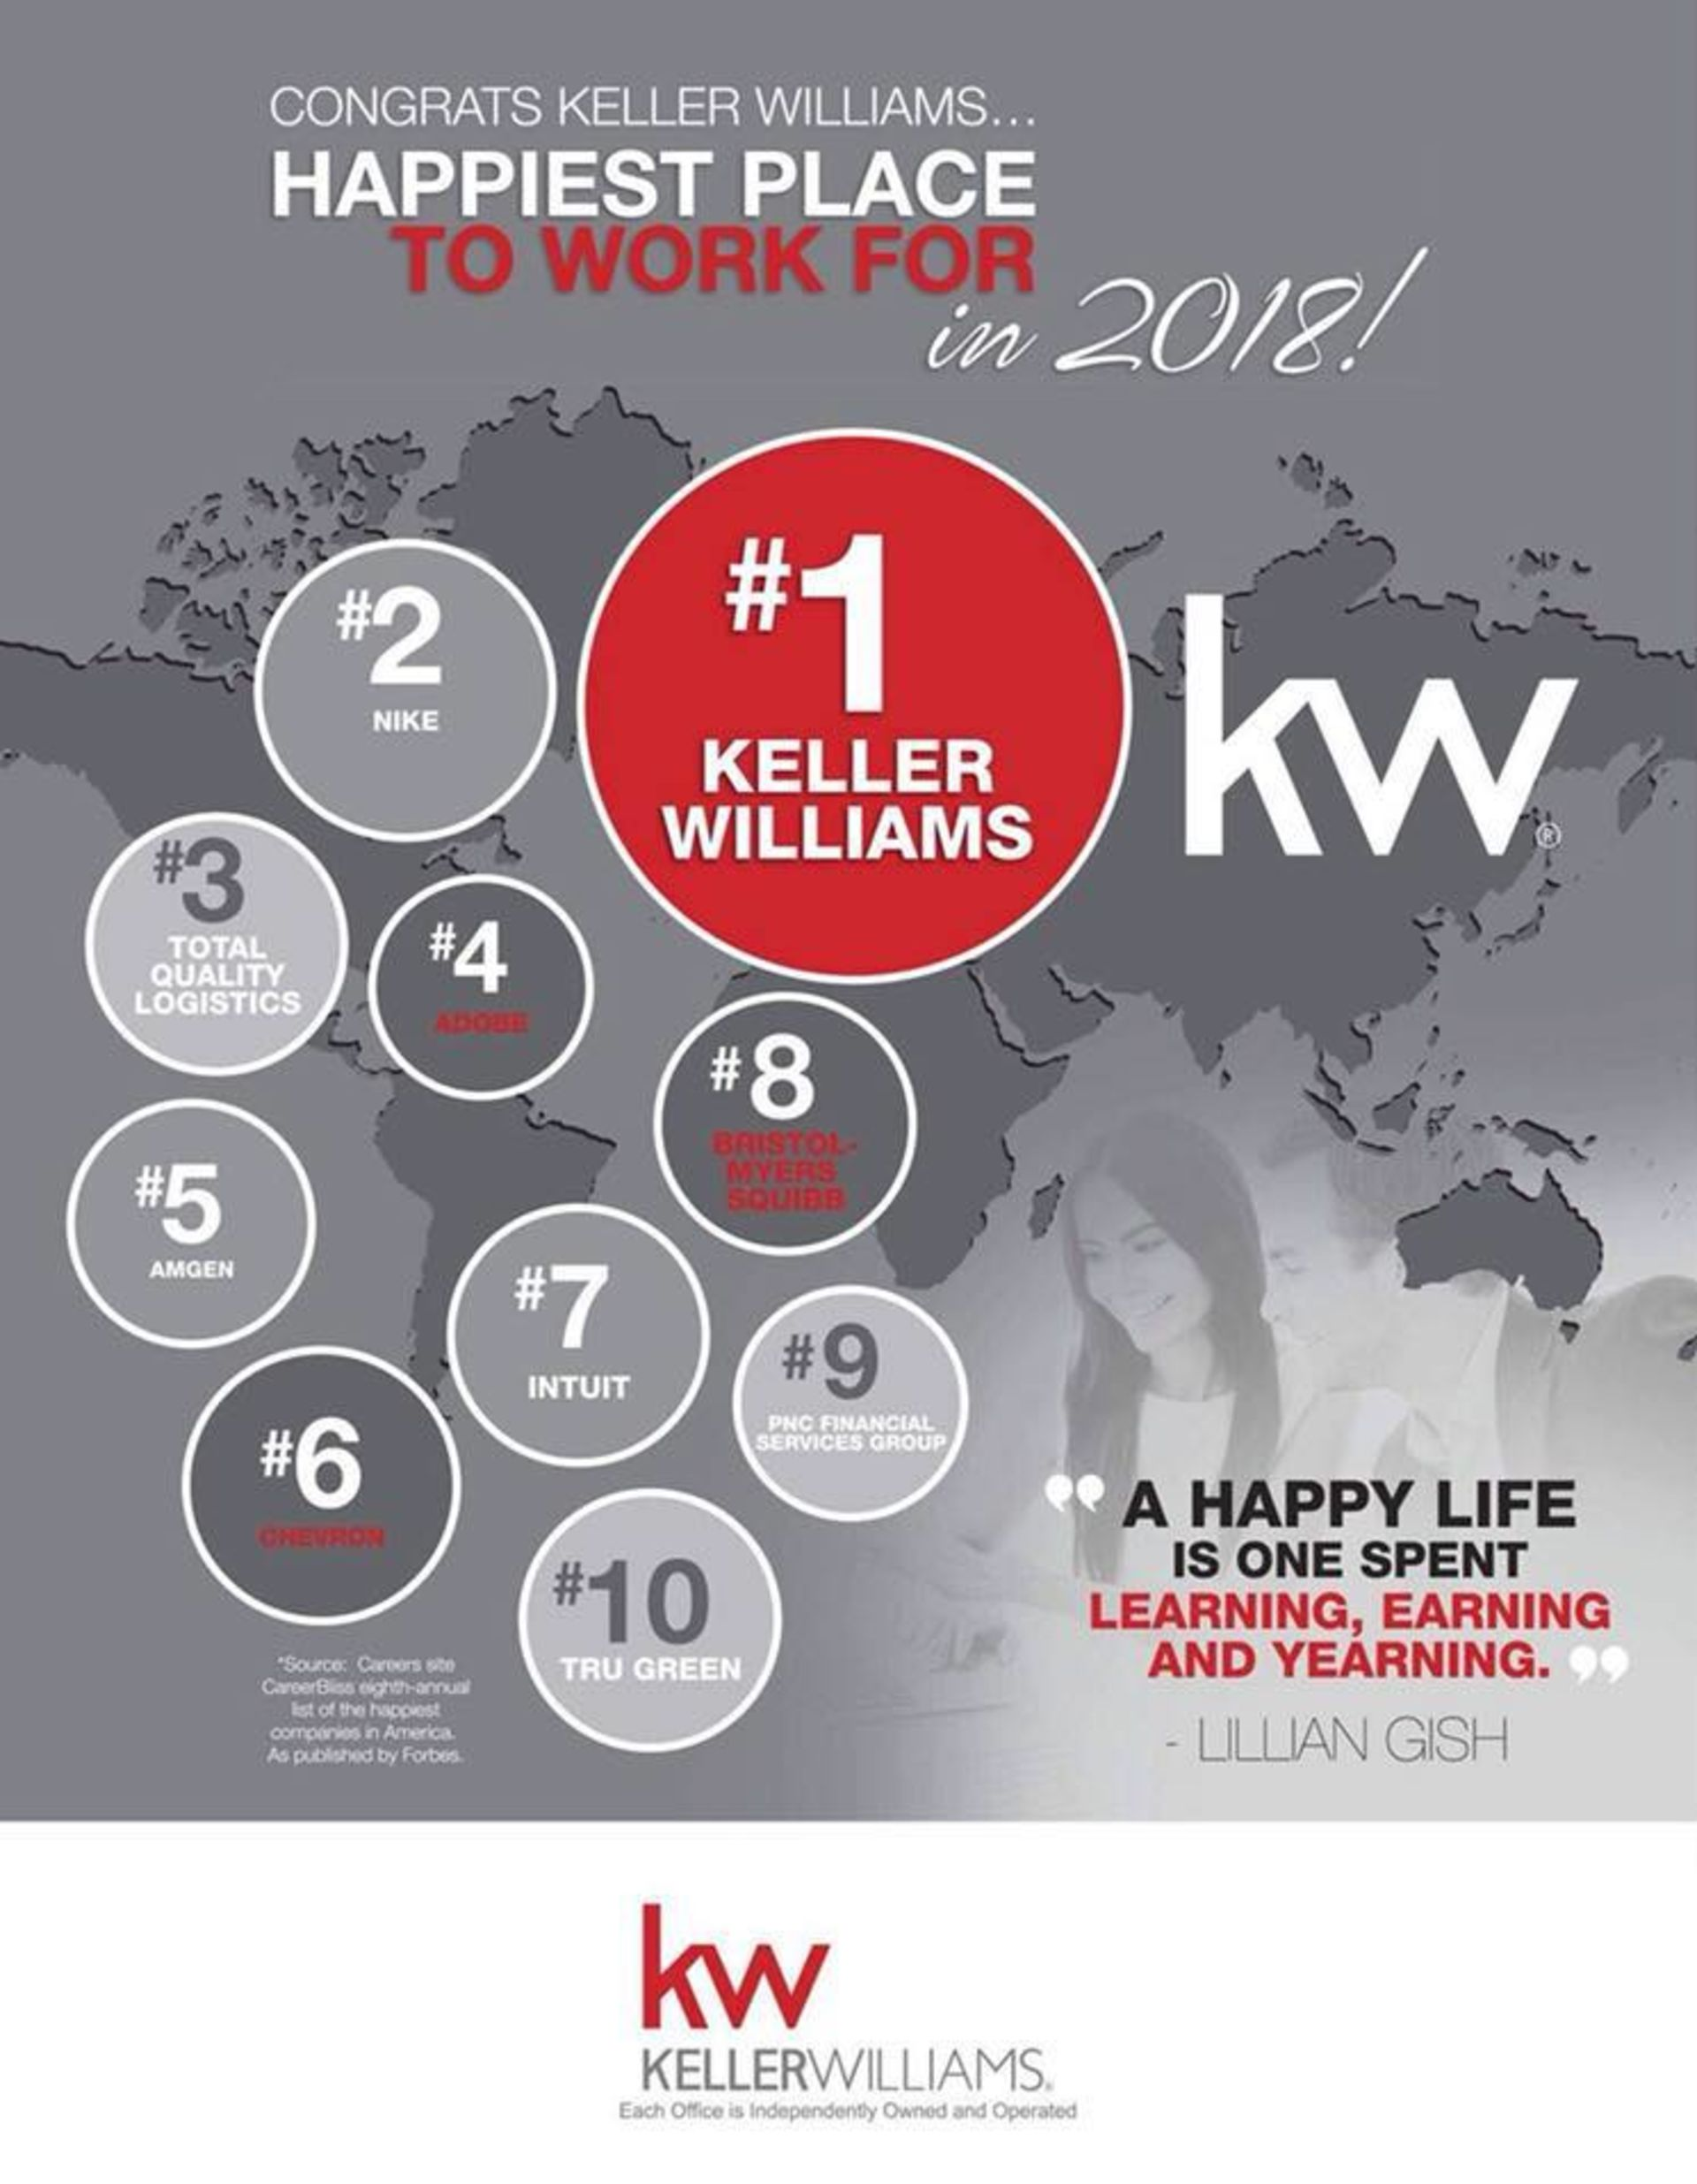 Keller Williams Named Happiest Company To Work For In 2018